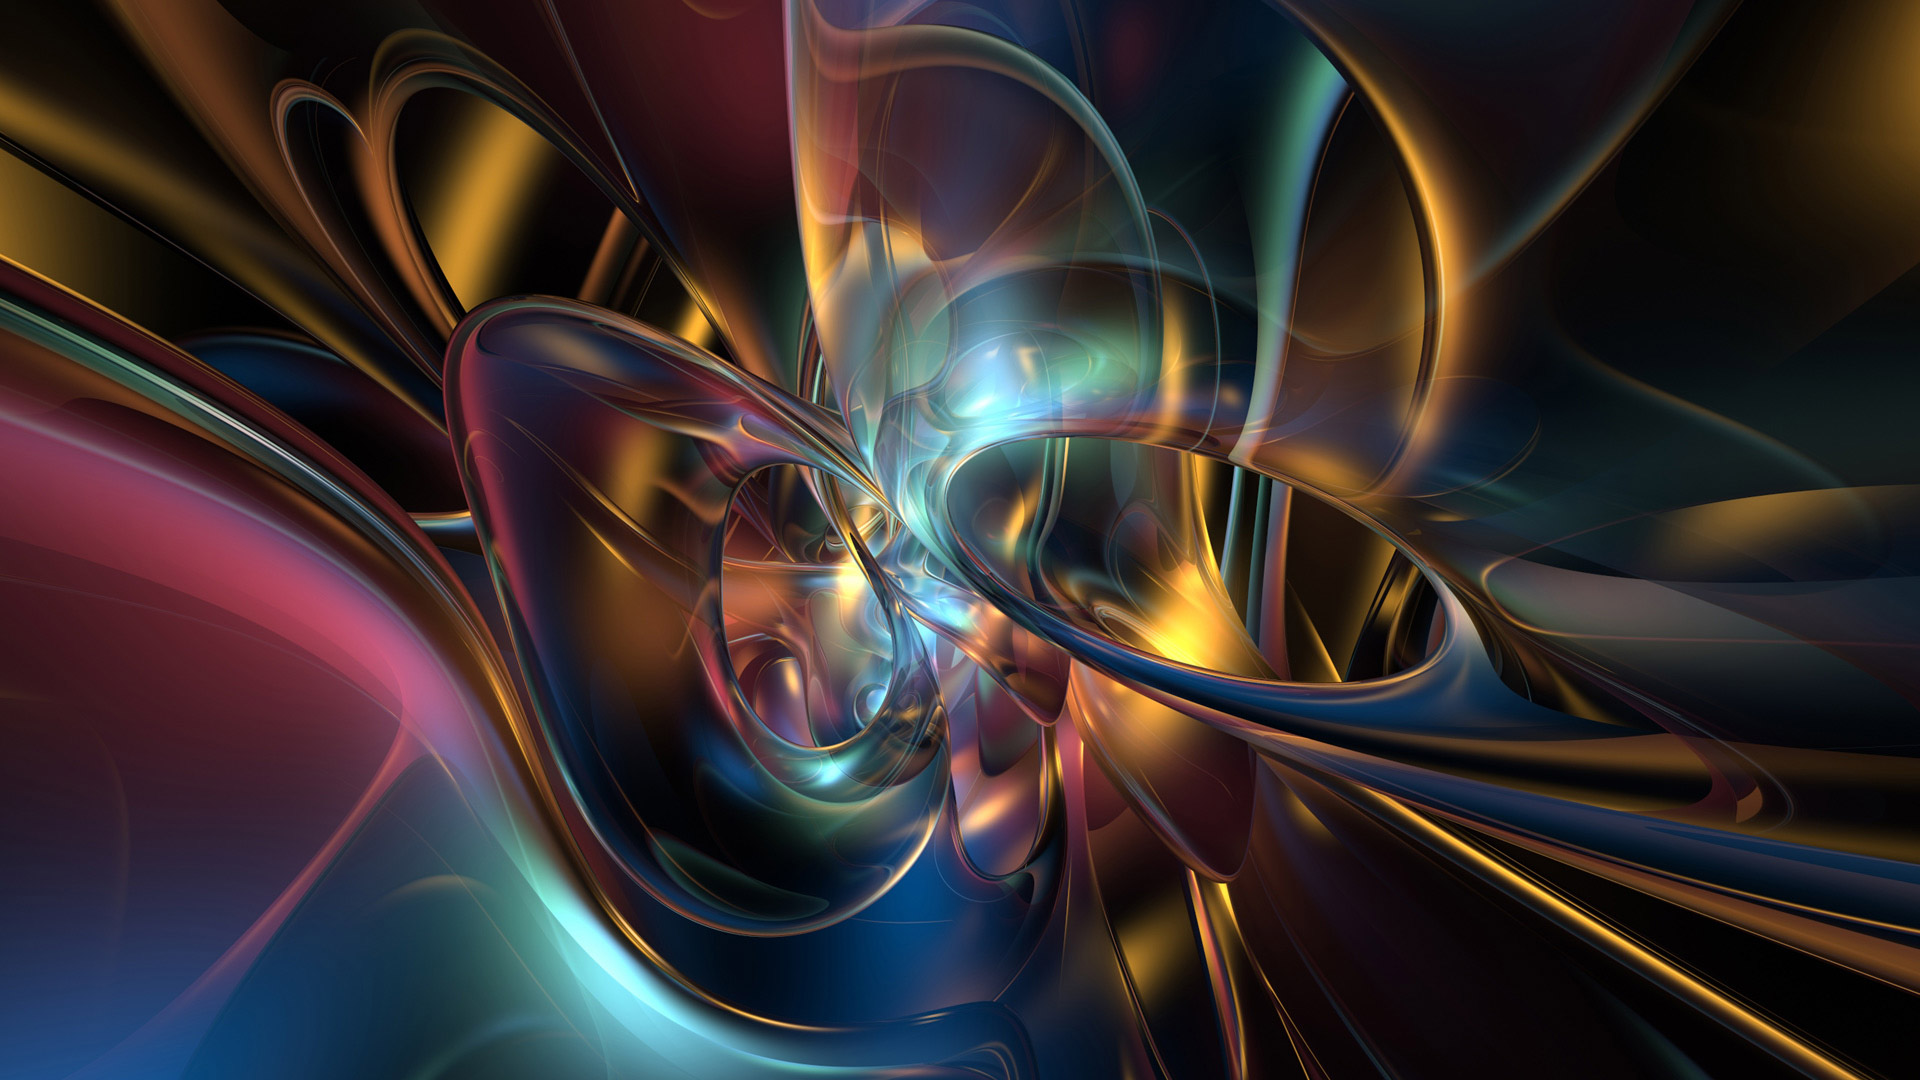 Abstract Hd Widescreen Wallpaper 1280×800 Wallpaper